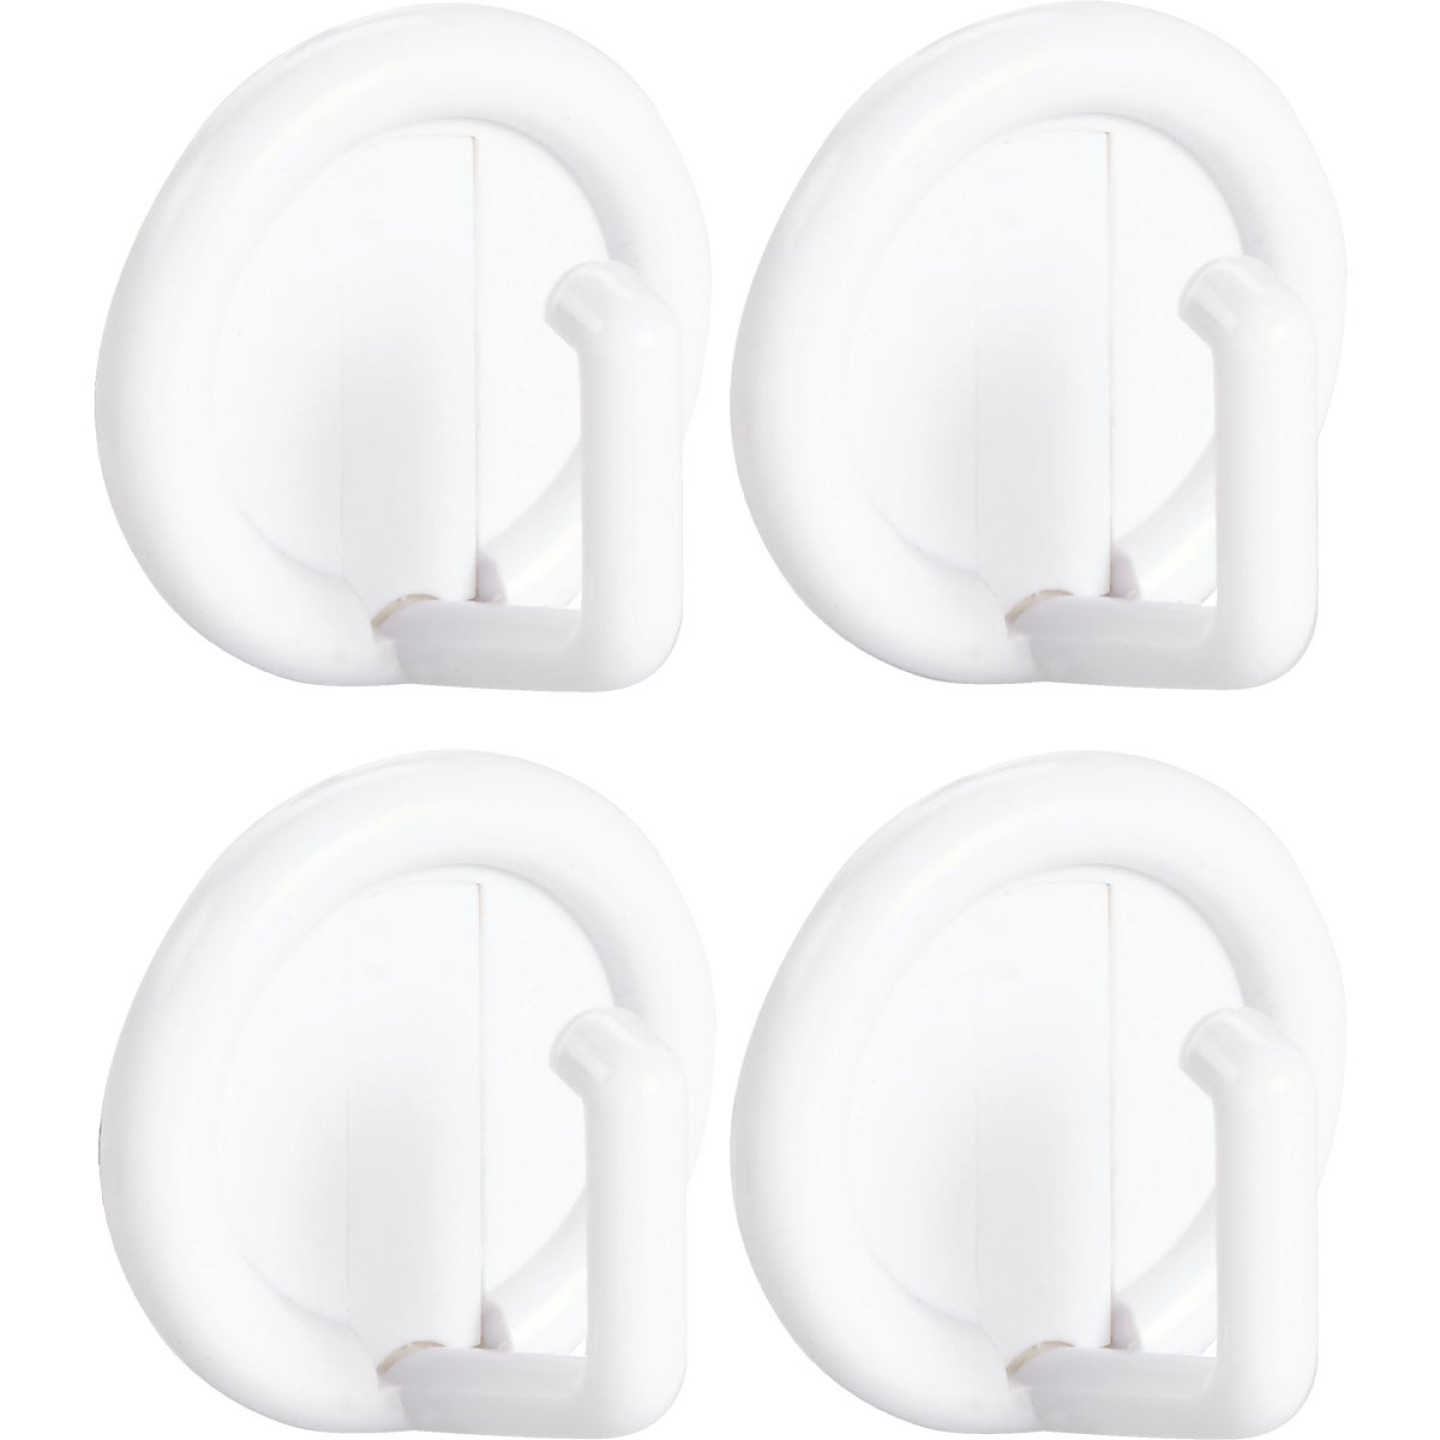 InterDesign Axis Utility Round White Adhesive Hook Image 1